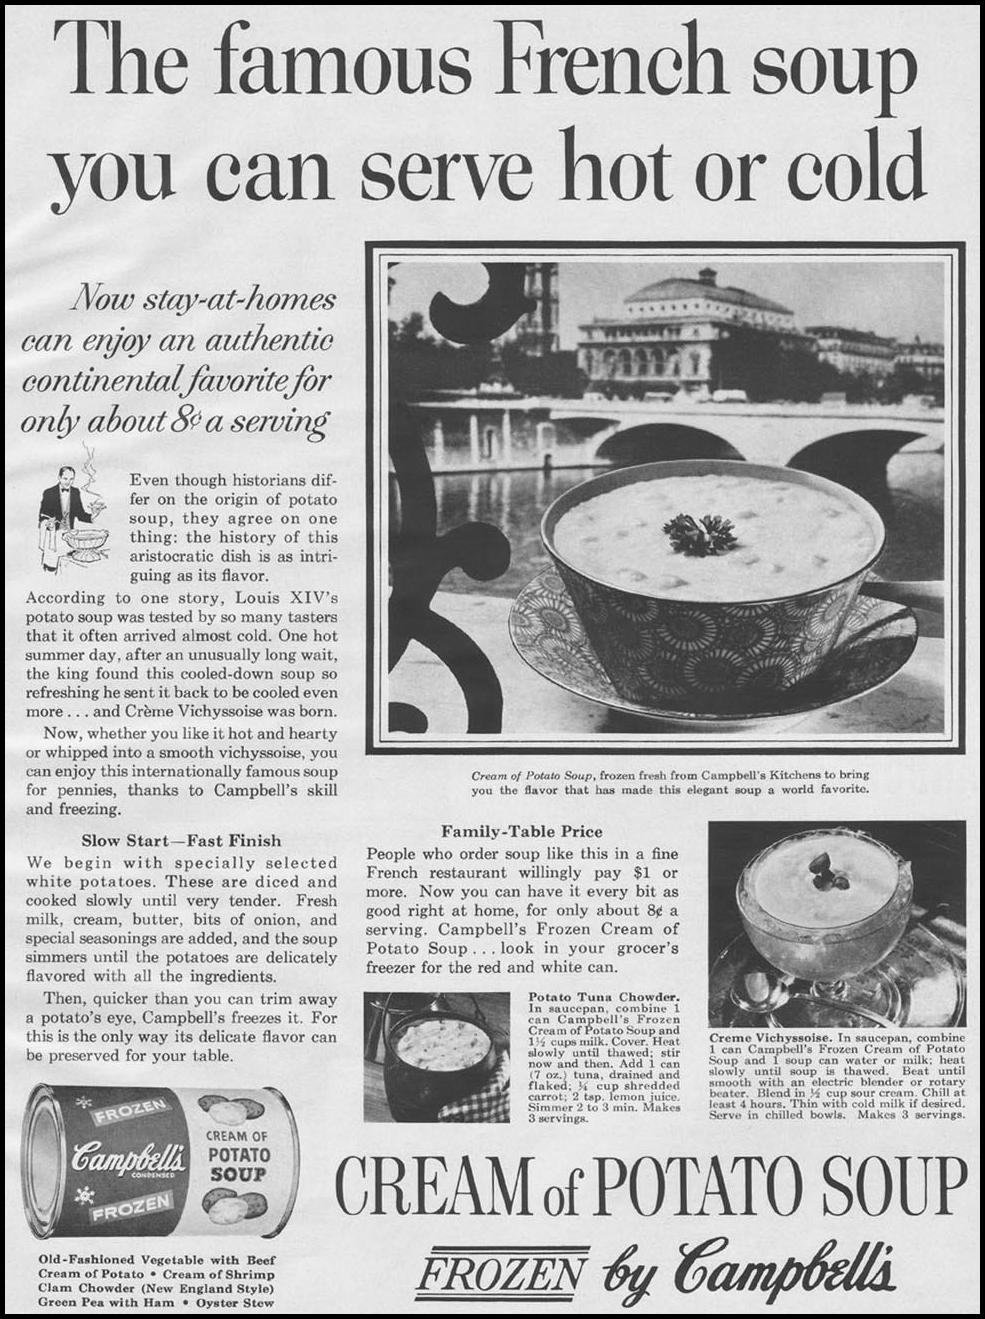 CAMPBELL'S CREAM OF POTATO SOUP BETTER HOMES AND GARDENS 03/01/1960 p. 119